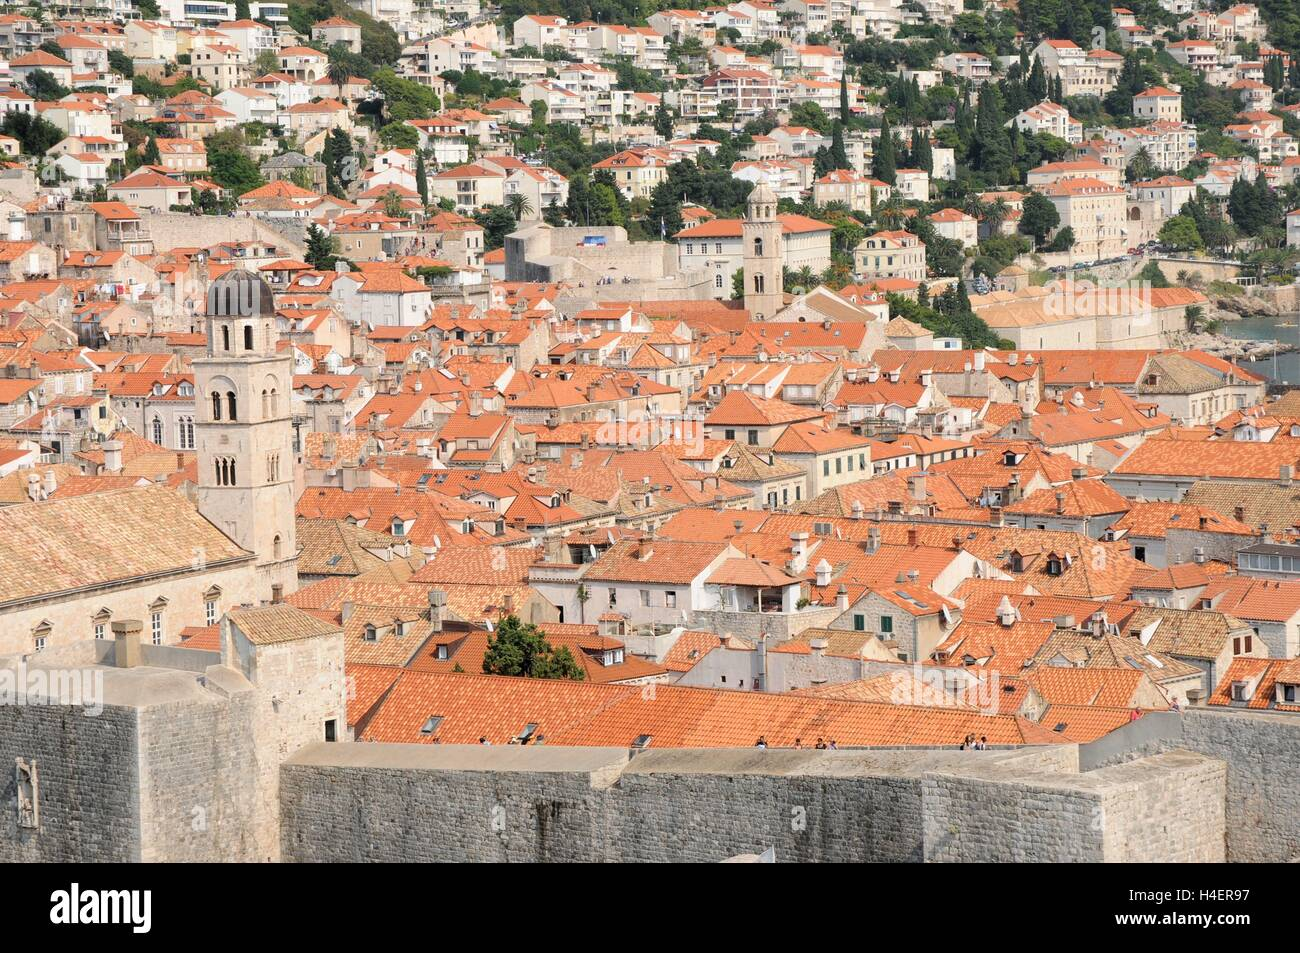 The rooftops of  the Old Town, Dubrovnik, Croatia. - Stock Image